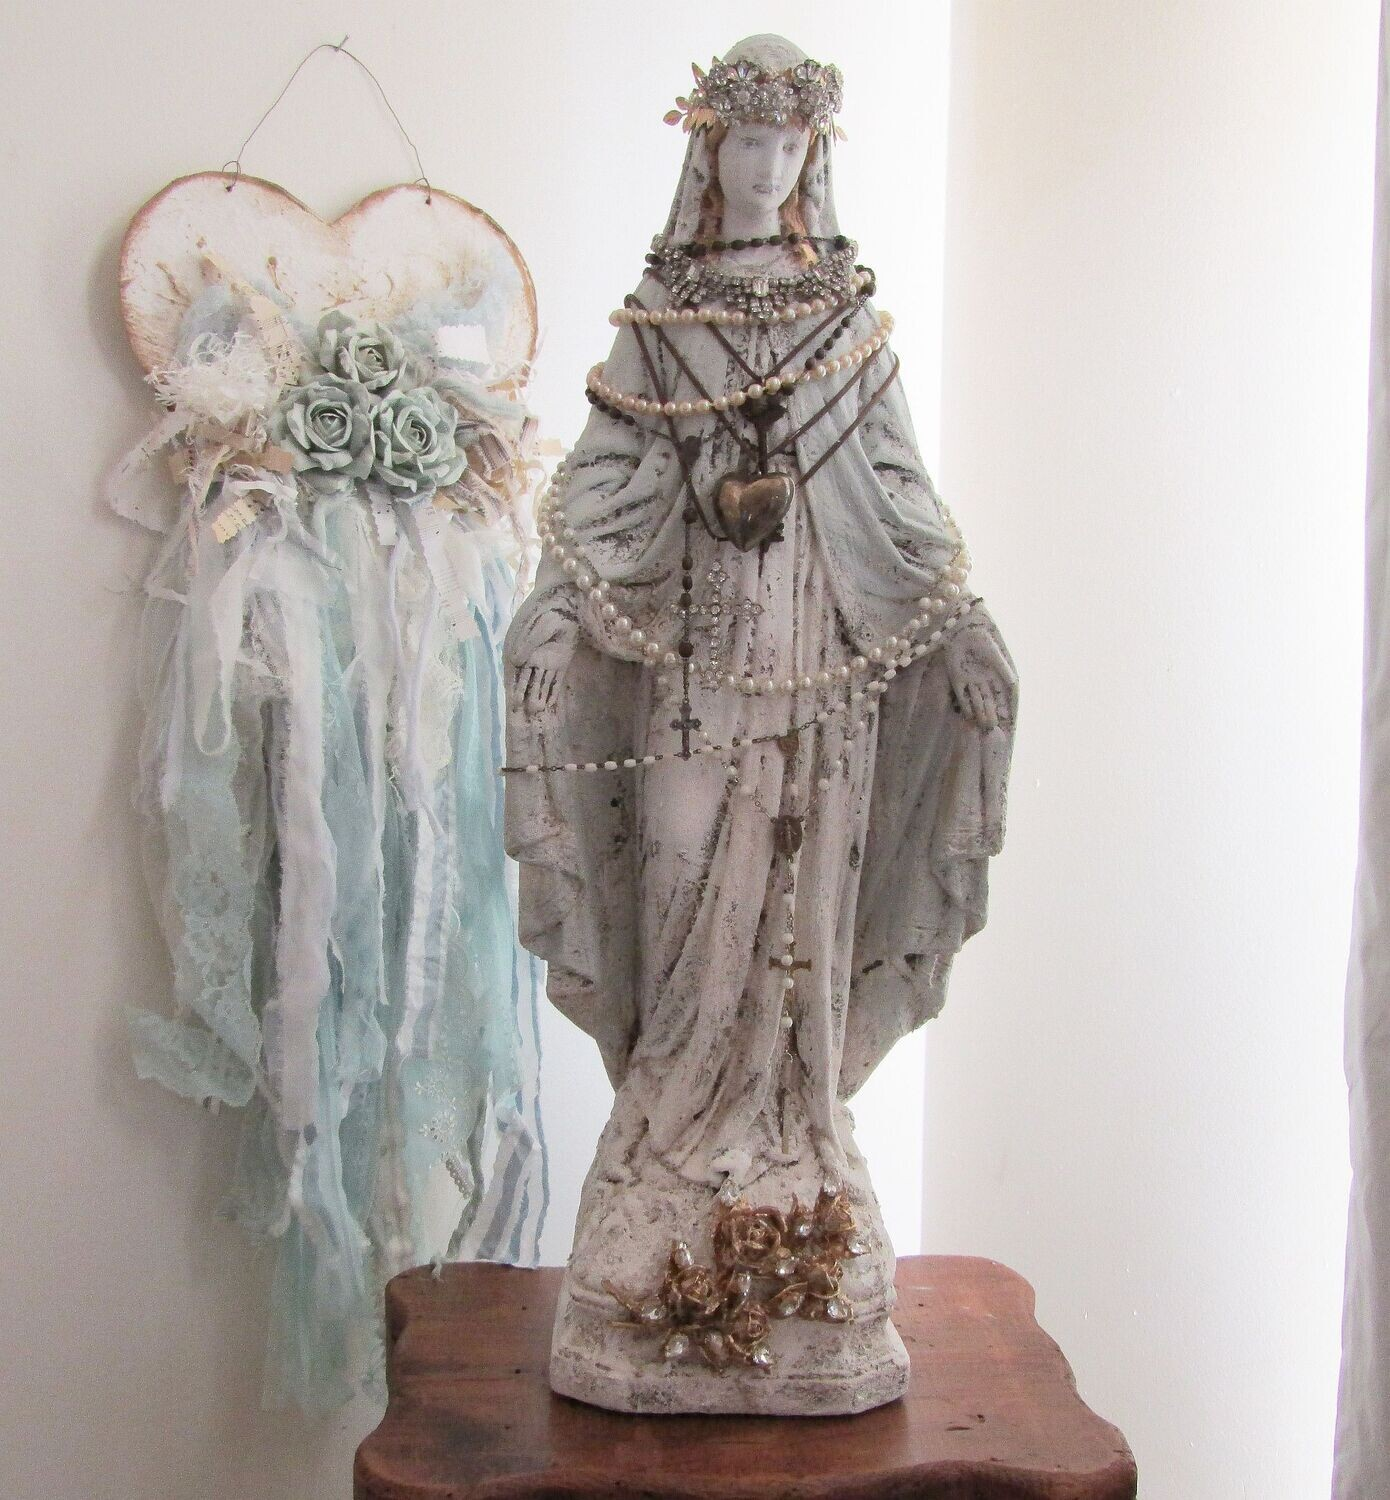 Antique Virgin Mary statue with crown, embellished Madonna